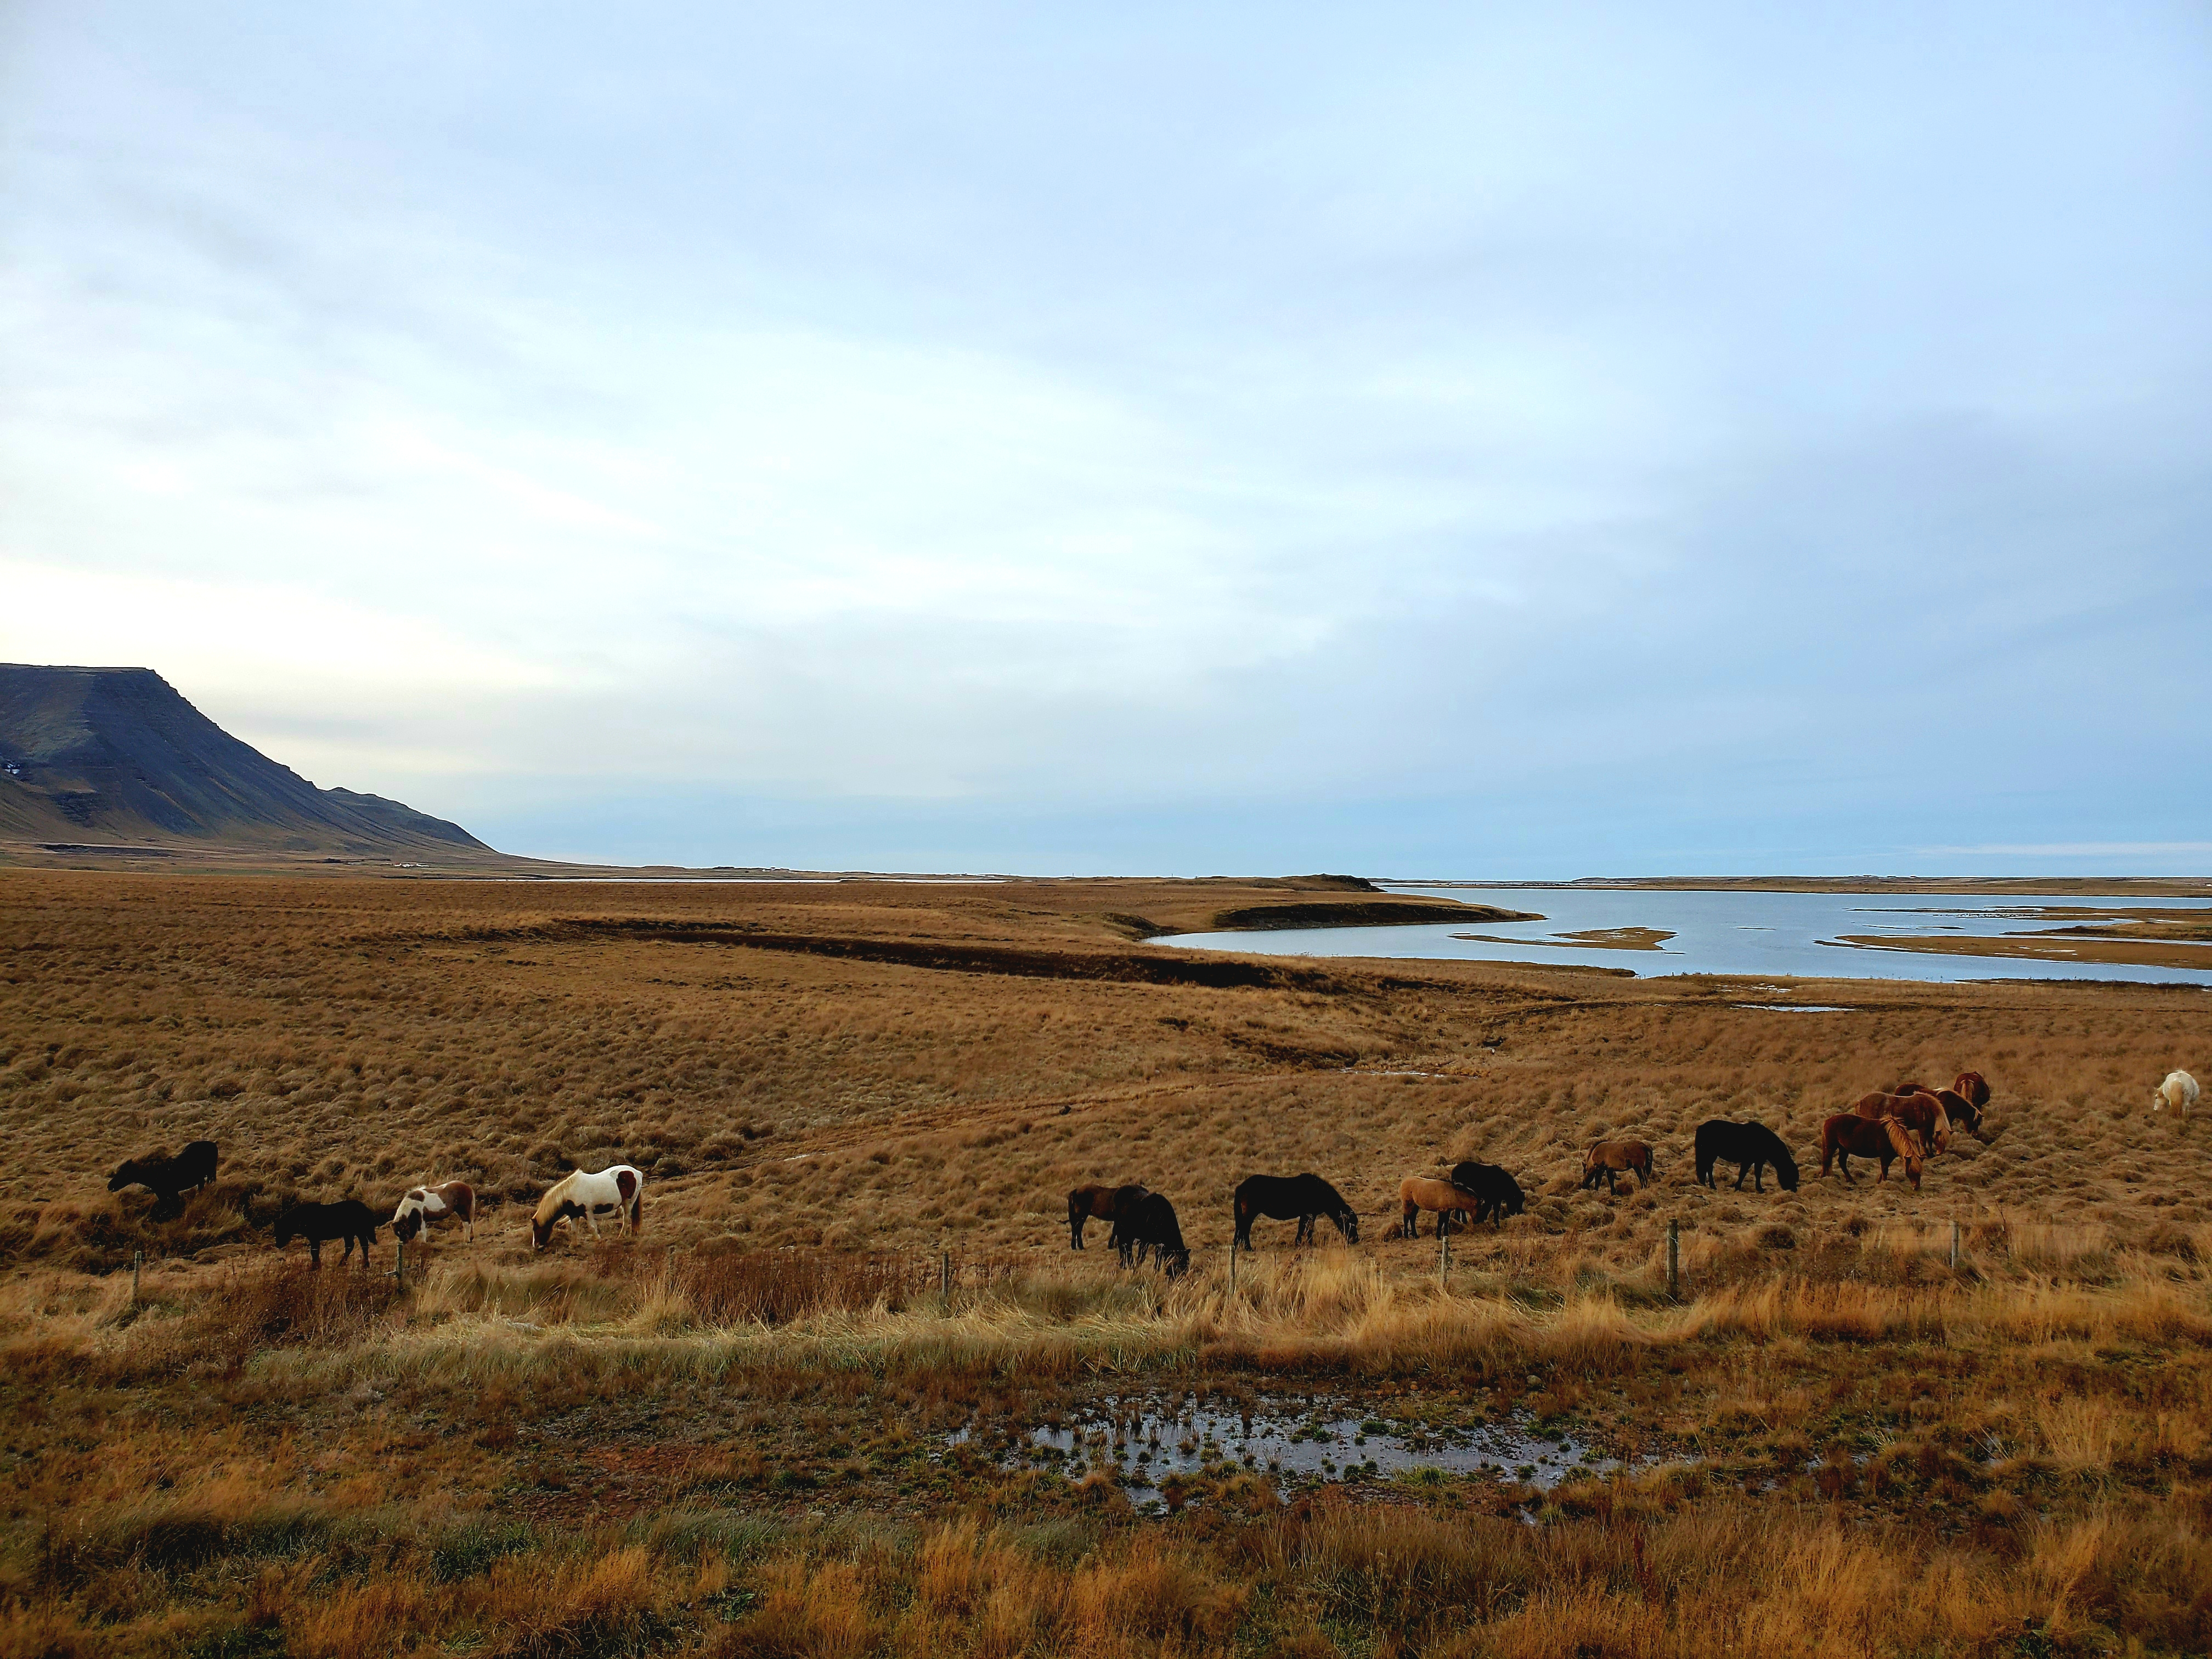 Iceland – first impressions and scenery